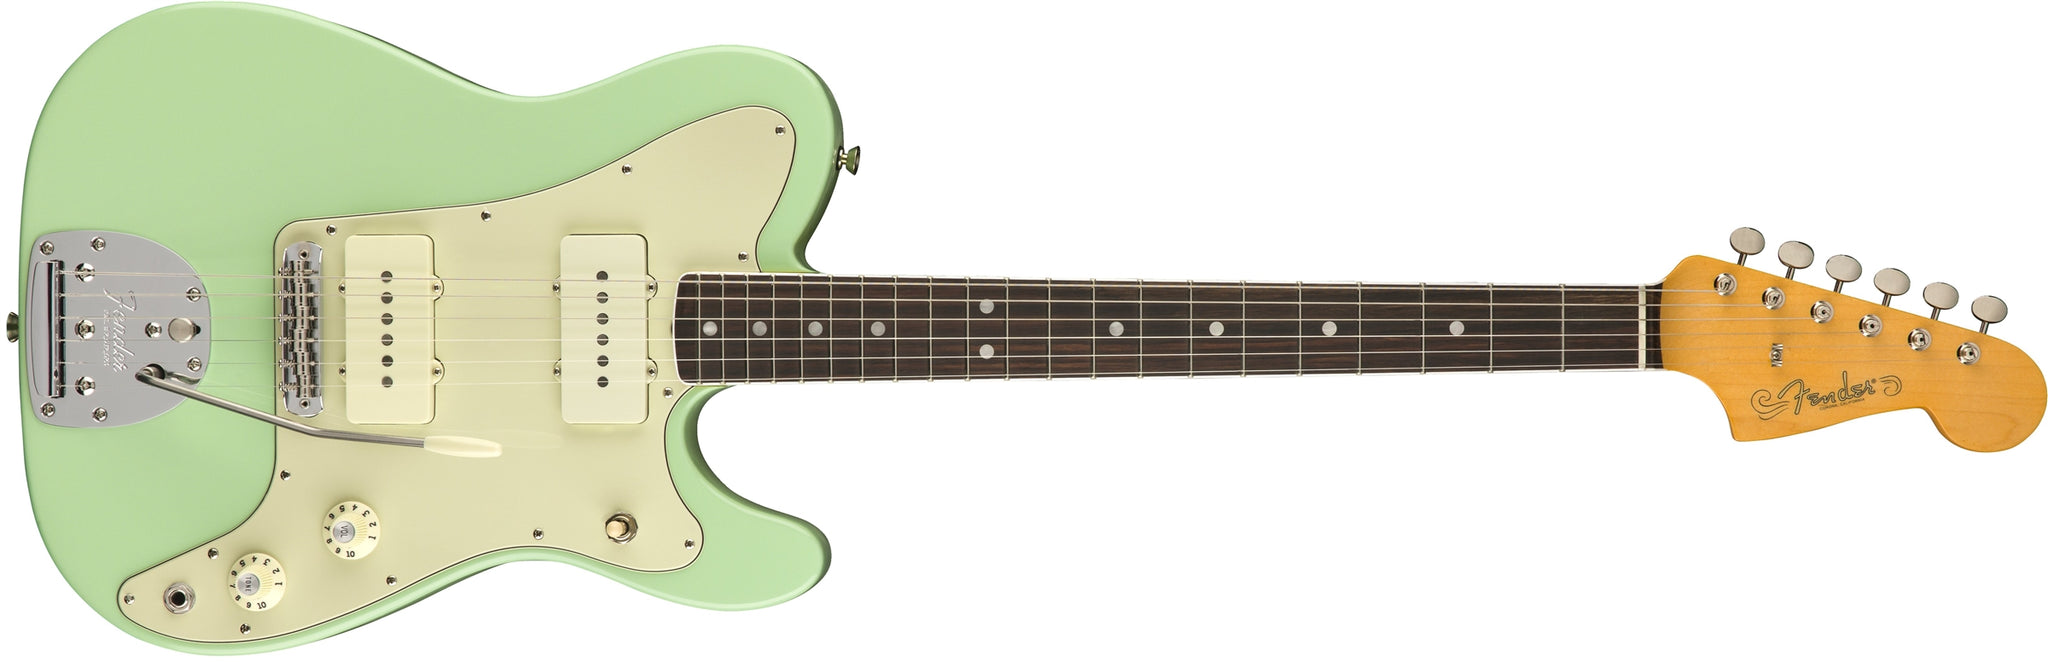 Limited Edition Jazz-Tele, Rosewood Fingerboard, Surf Green